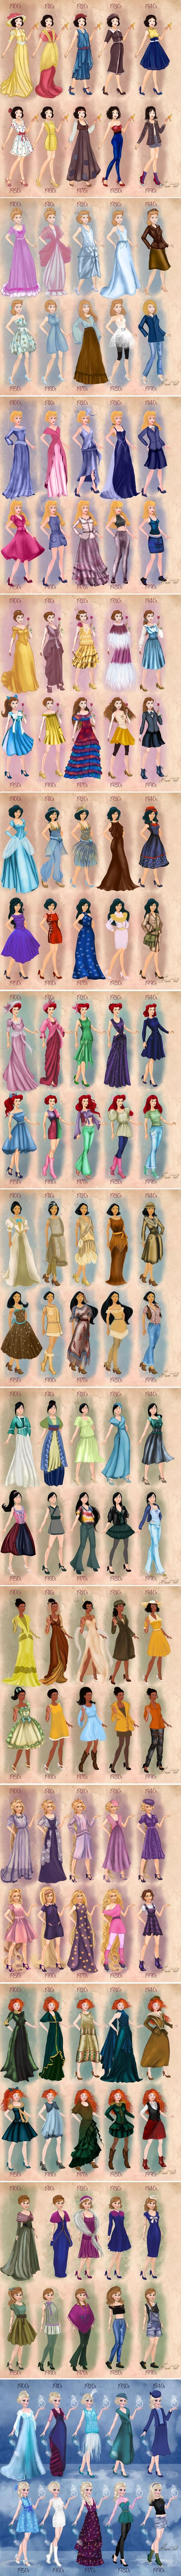 Disney Princesses in 20th Century Fashion. >>> they all look at home in different eras